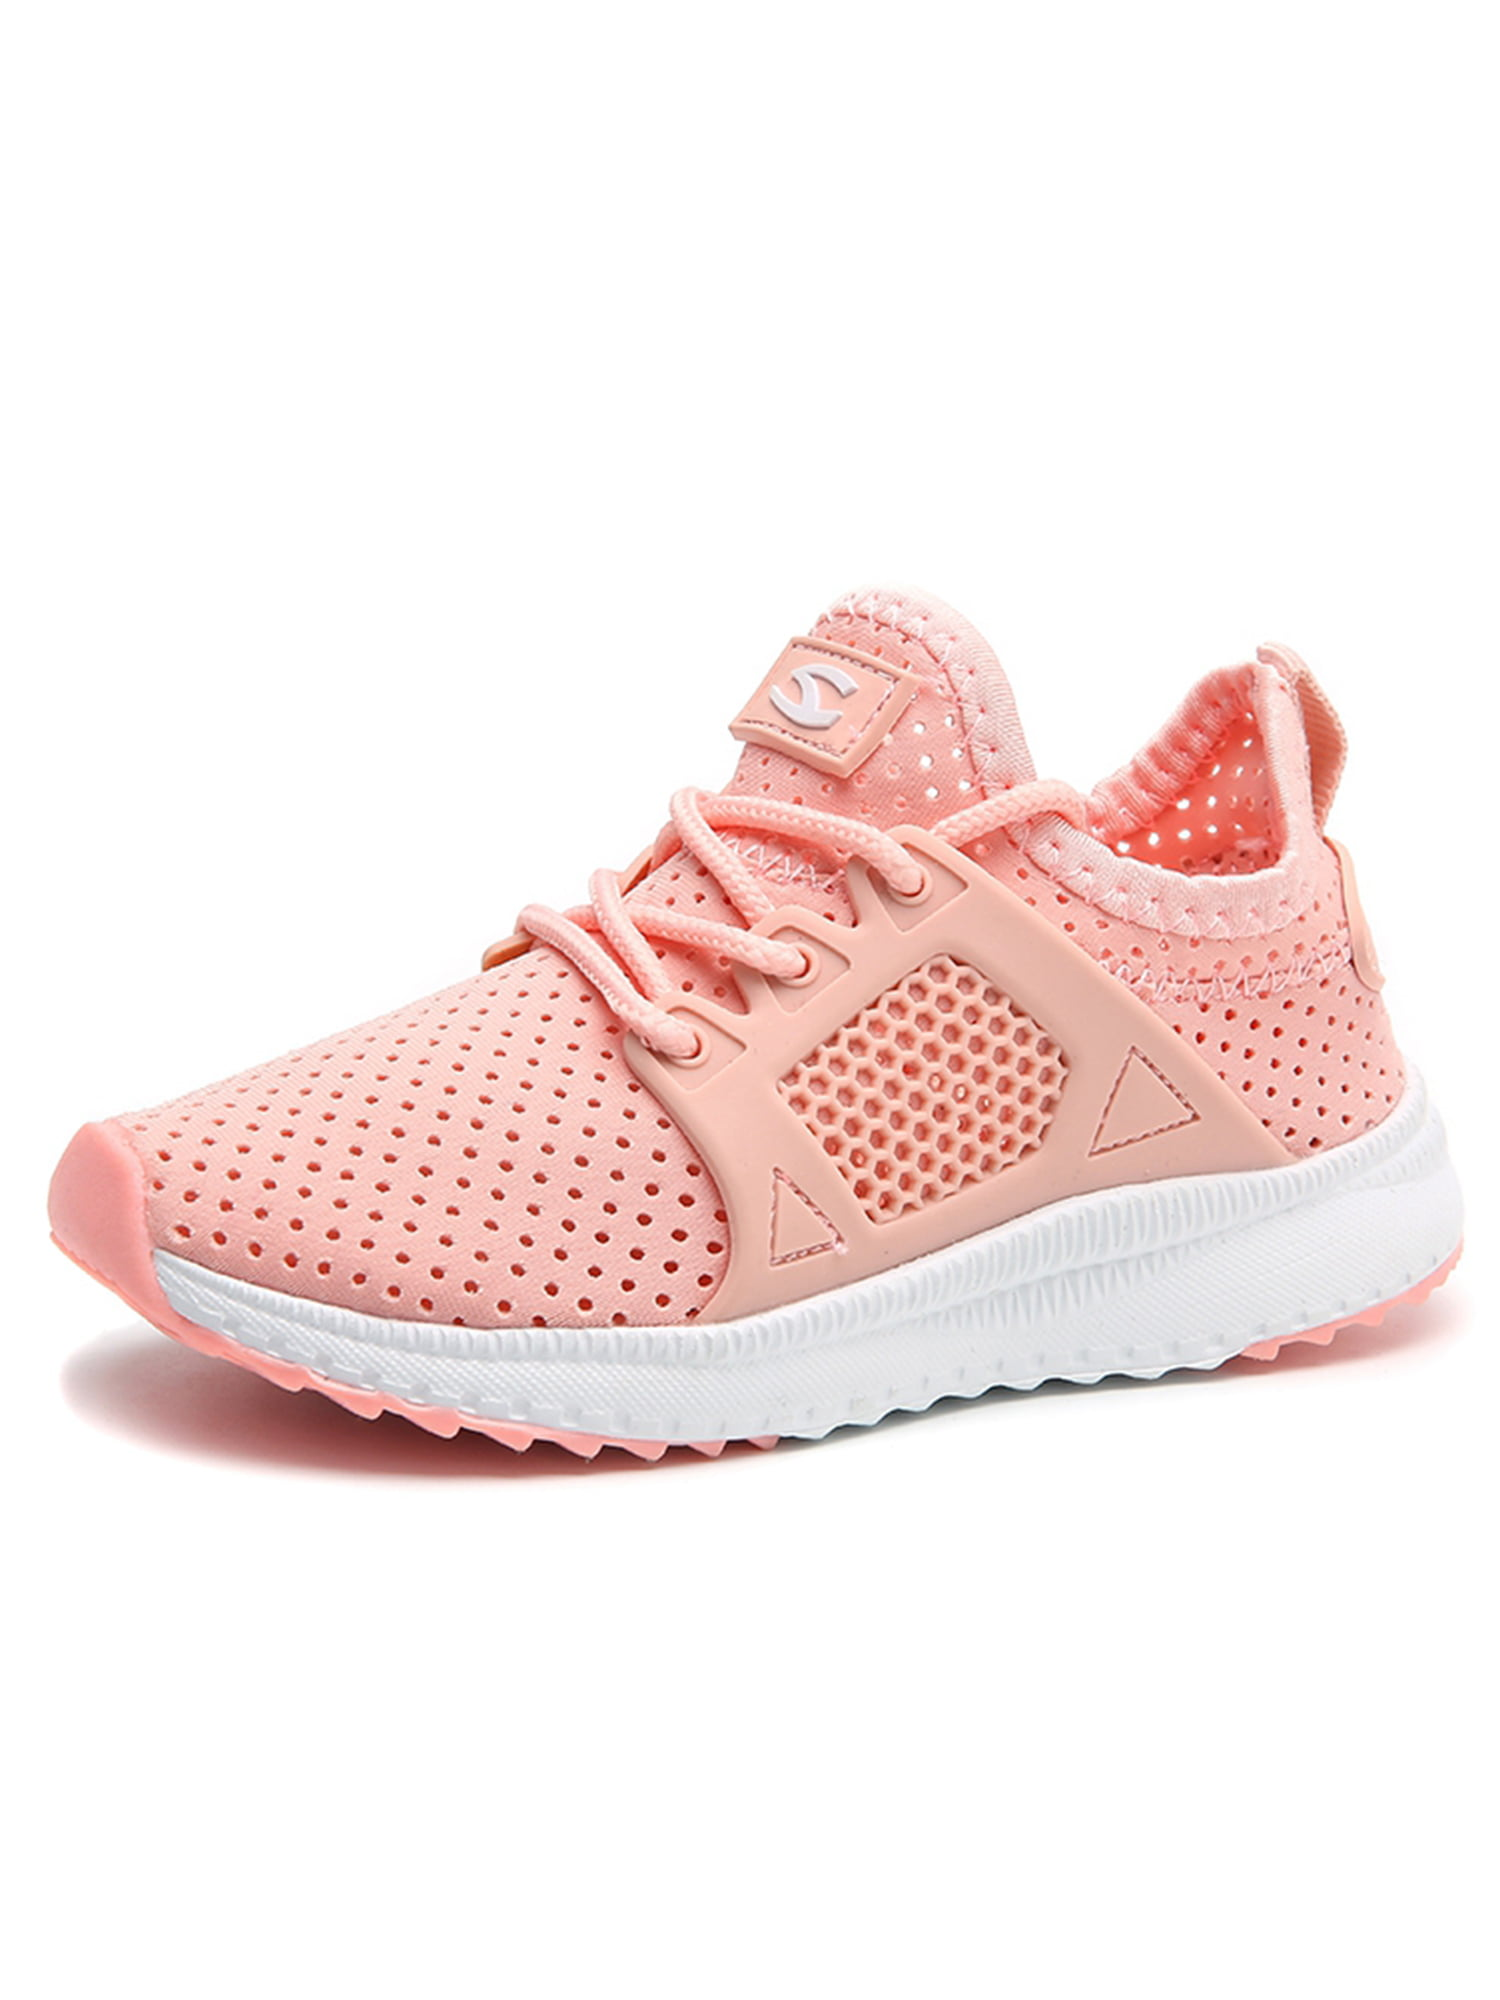 Tanleewa Boys Girls Running Shoes Athletic Comfortable Fashion Lightweight Mesh Kids Slip on Cushion Sport Sneakers